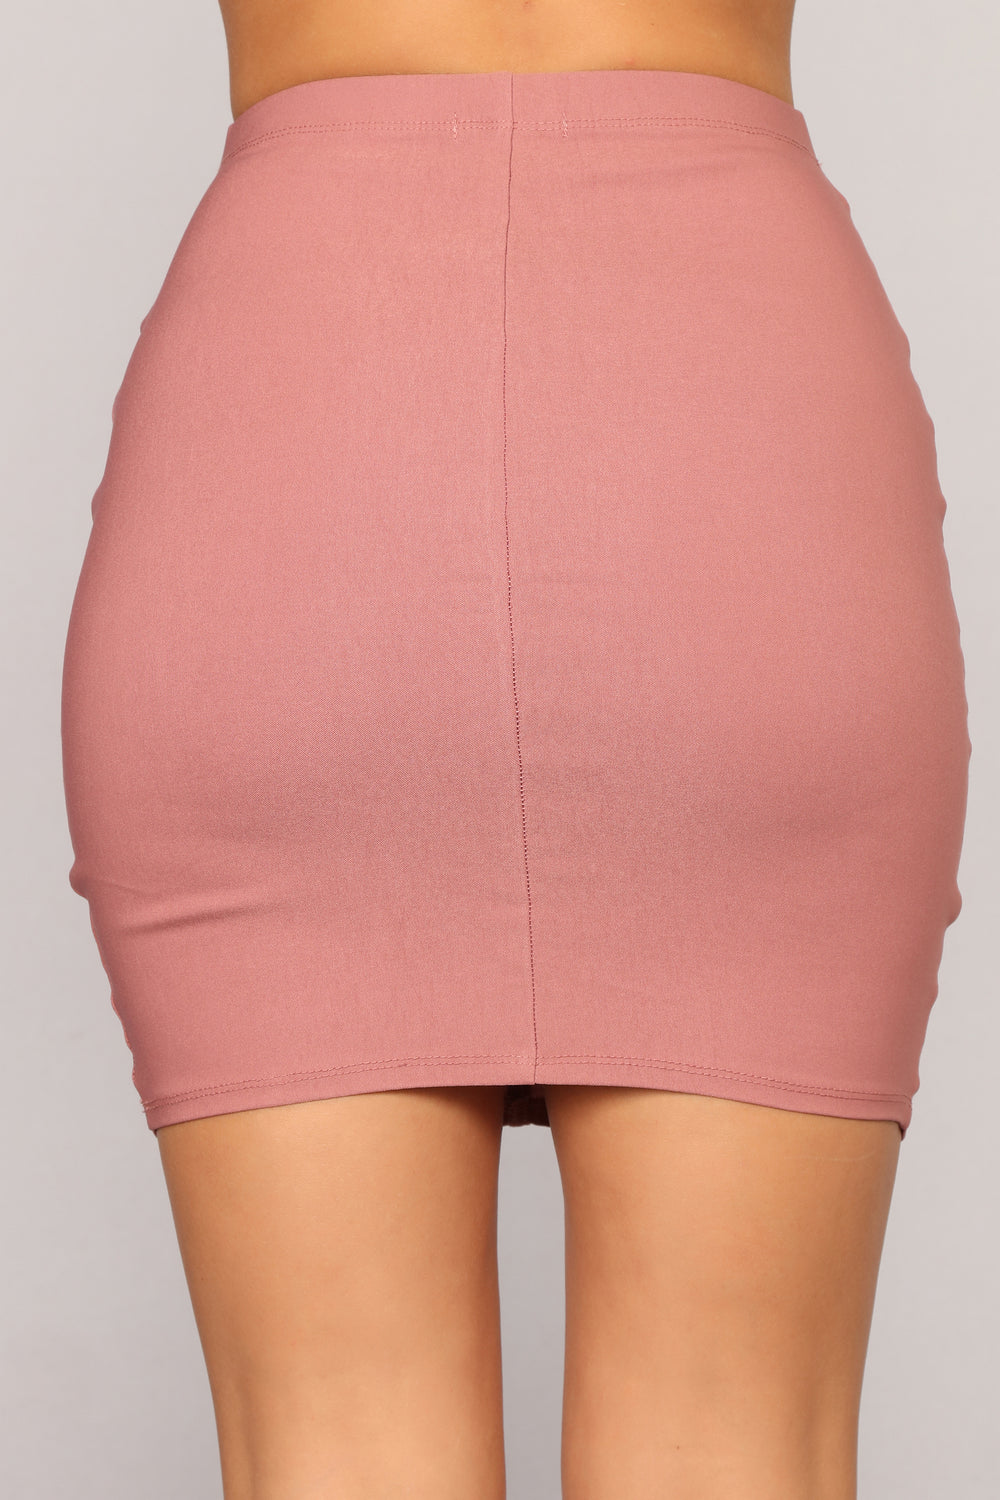 Empire State Of Mind Skirt - Mauve